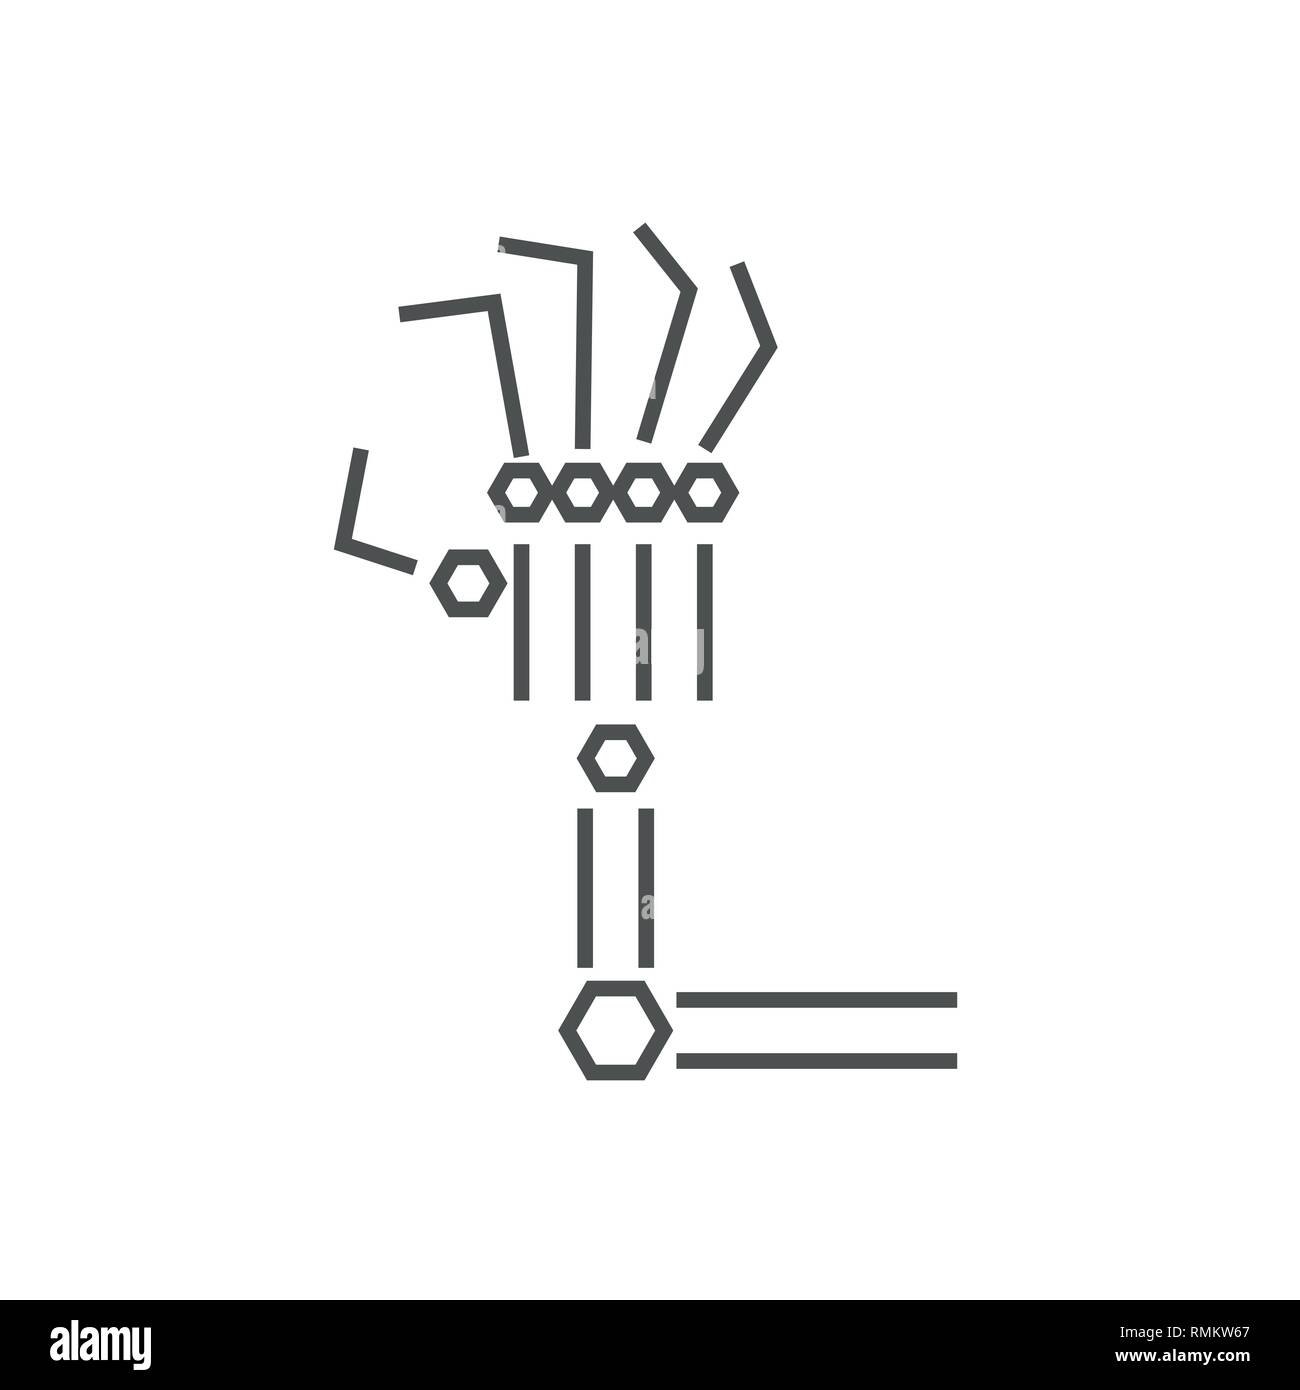 Robotic arm line icon on white background. Mechanical hand. Industrial robot manipulator. Modern industrial technology. IoT, Internet Of Things, AI - Stock Image